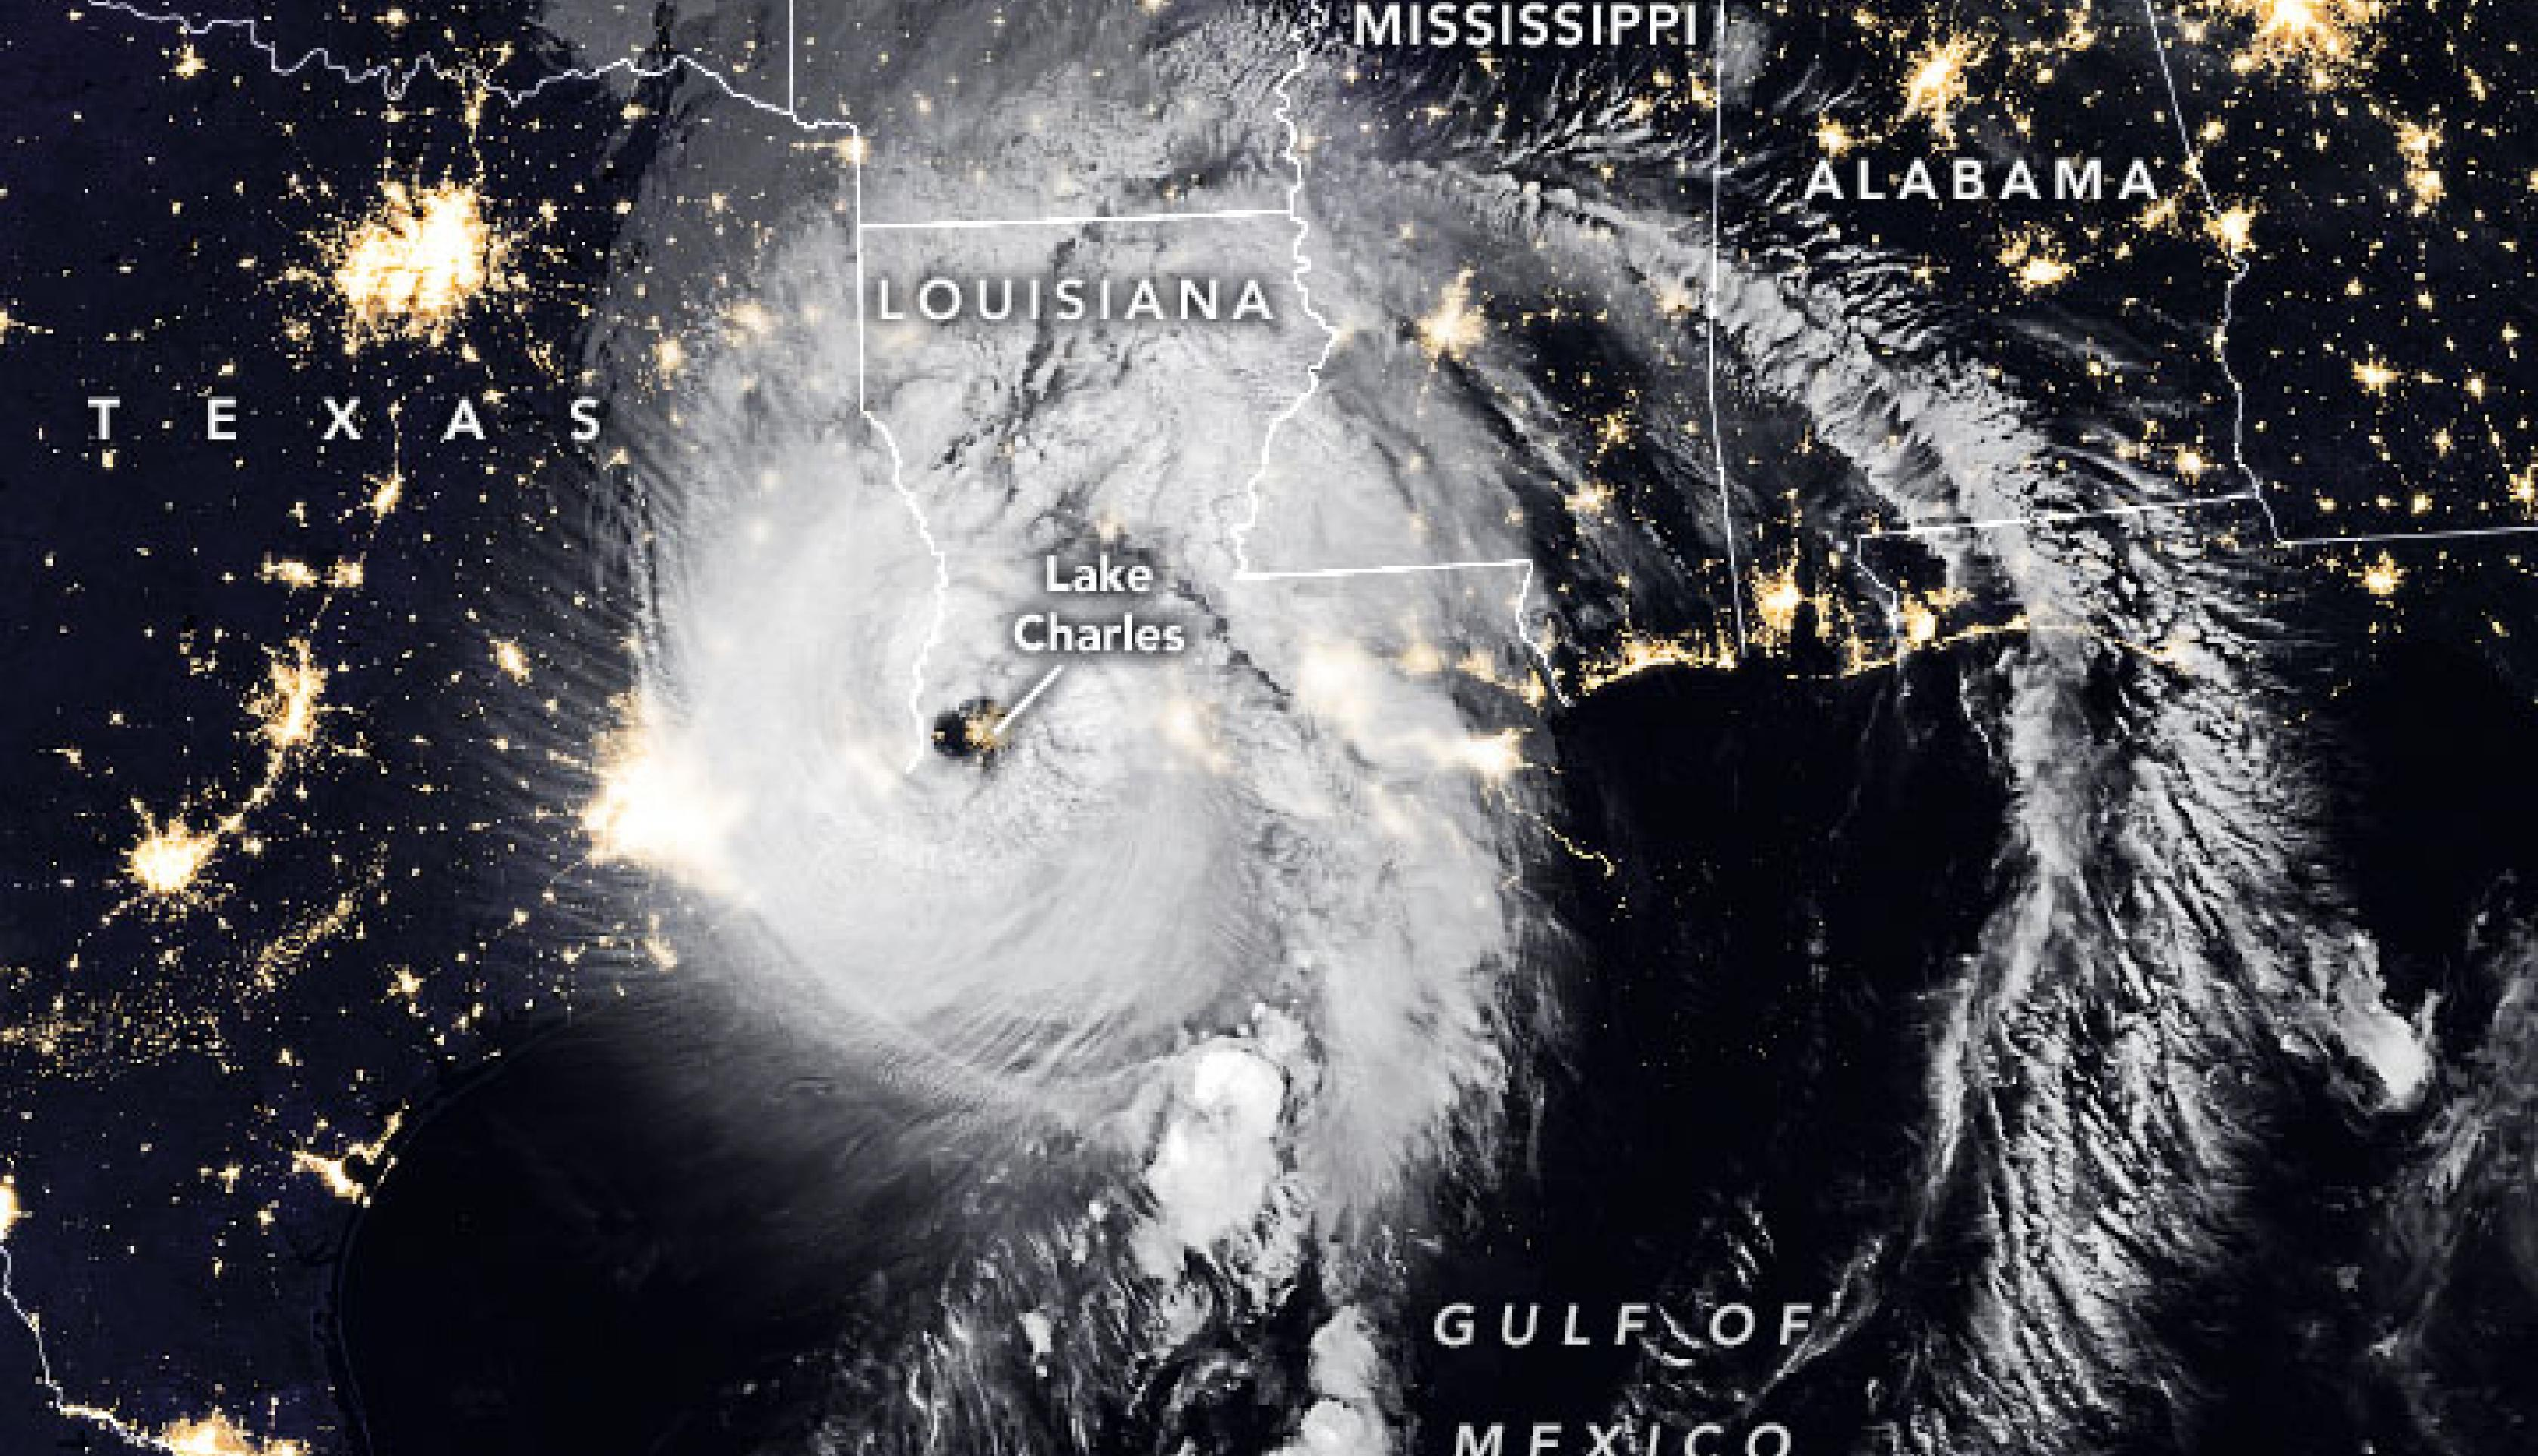 The Visible Infrared Imaging Radiometer Suite (VIIRS) onboard the NOAA-20 satellite acquired this image of Hurricane Laura at 2:50 a.m. CT on August 27, 2020, about two hours after the storm made landfall. Clouds are shown in infrared using brightness temperature data, which is useful for distinguishing cooler cloud structures from the warmer surface below. That data is overlaid on composite imagery of city lights from NASA's Black Marble dataset. Credit: NASA Earth Observatory